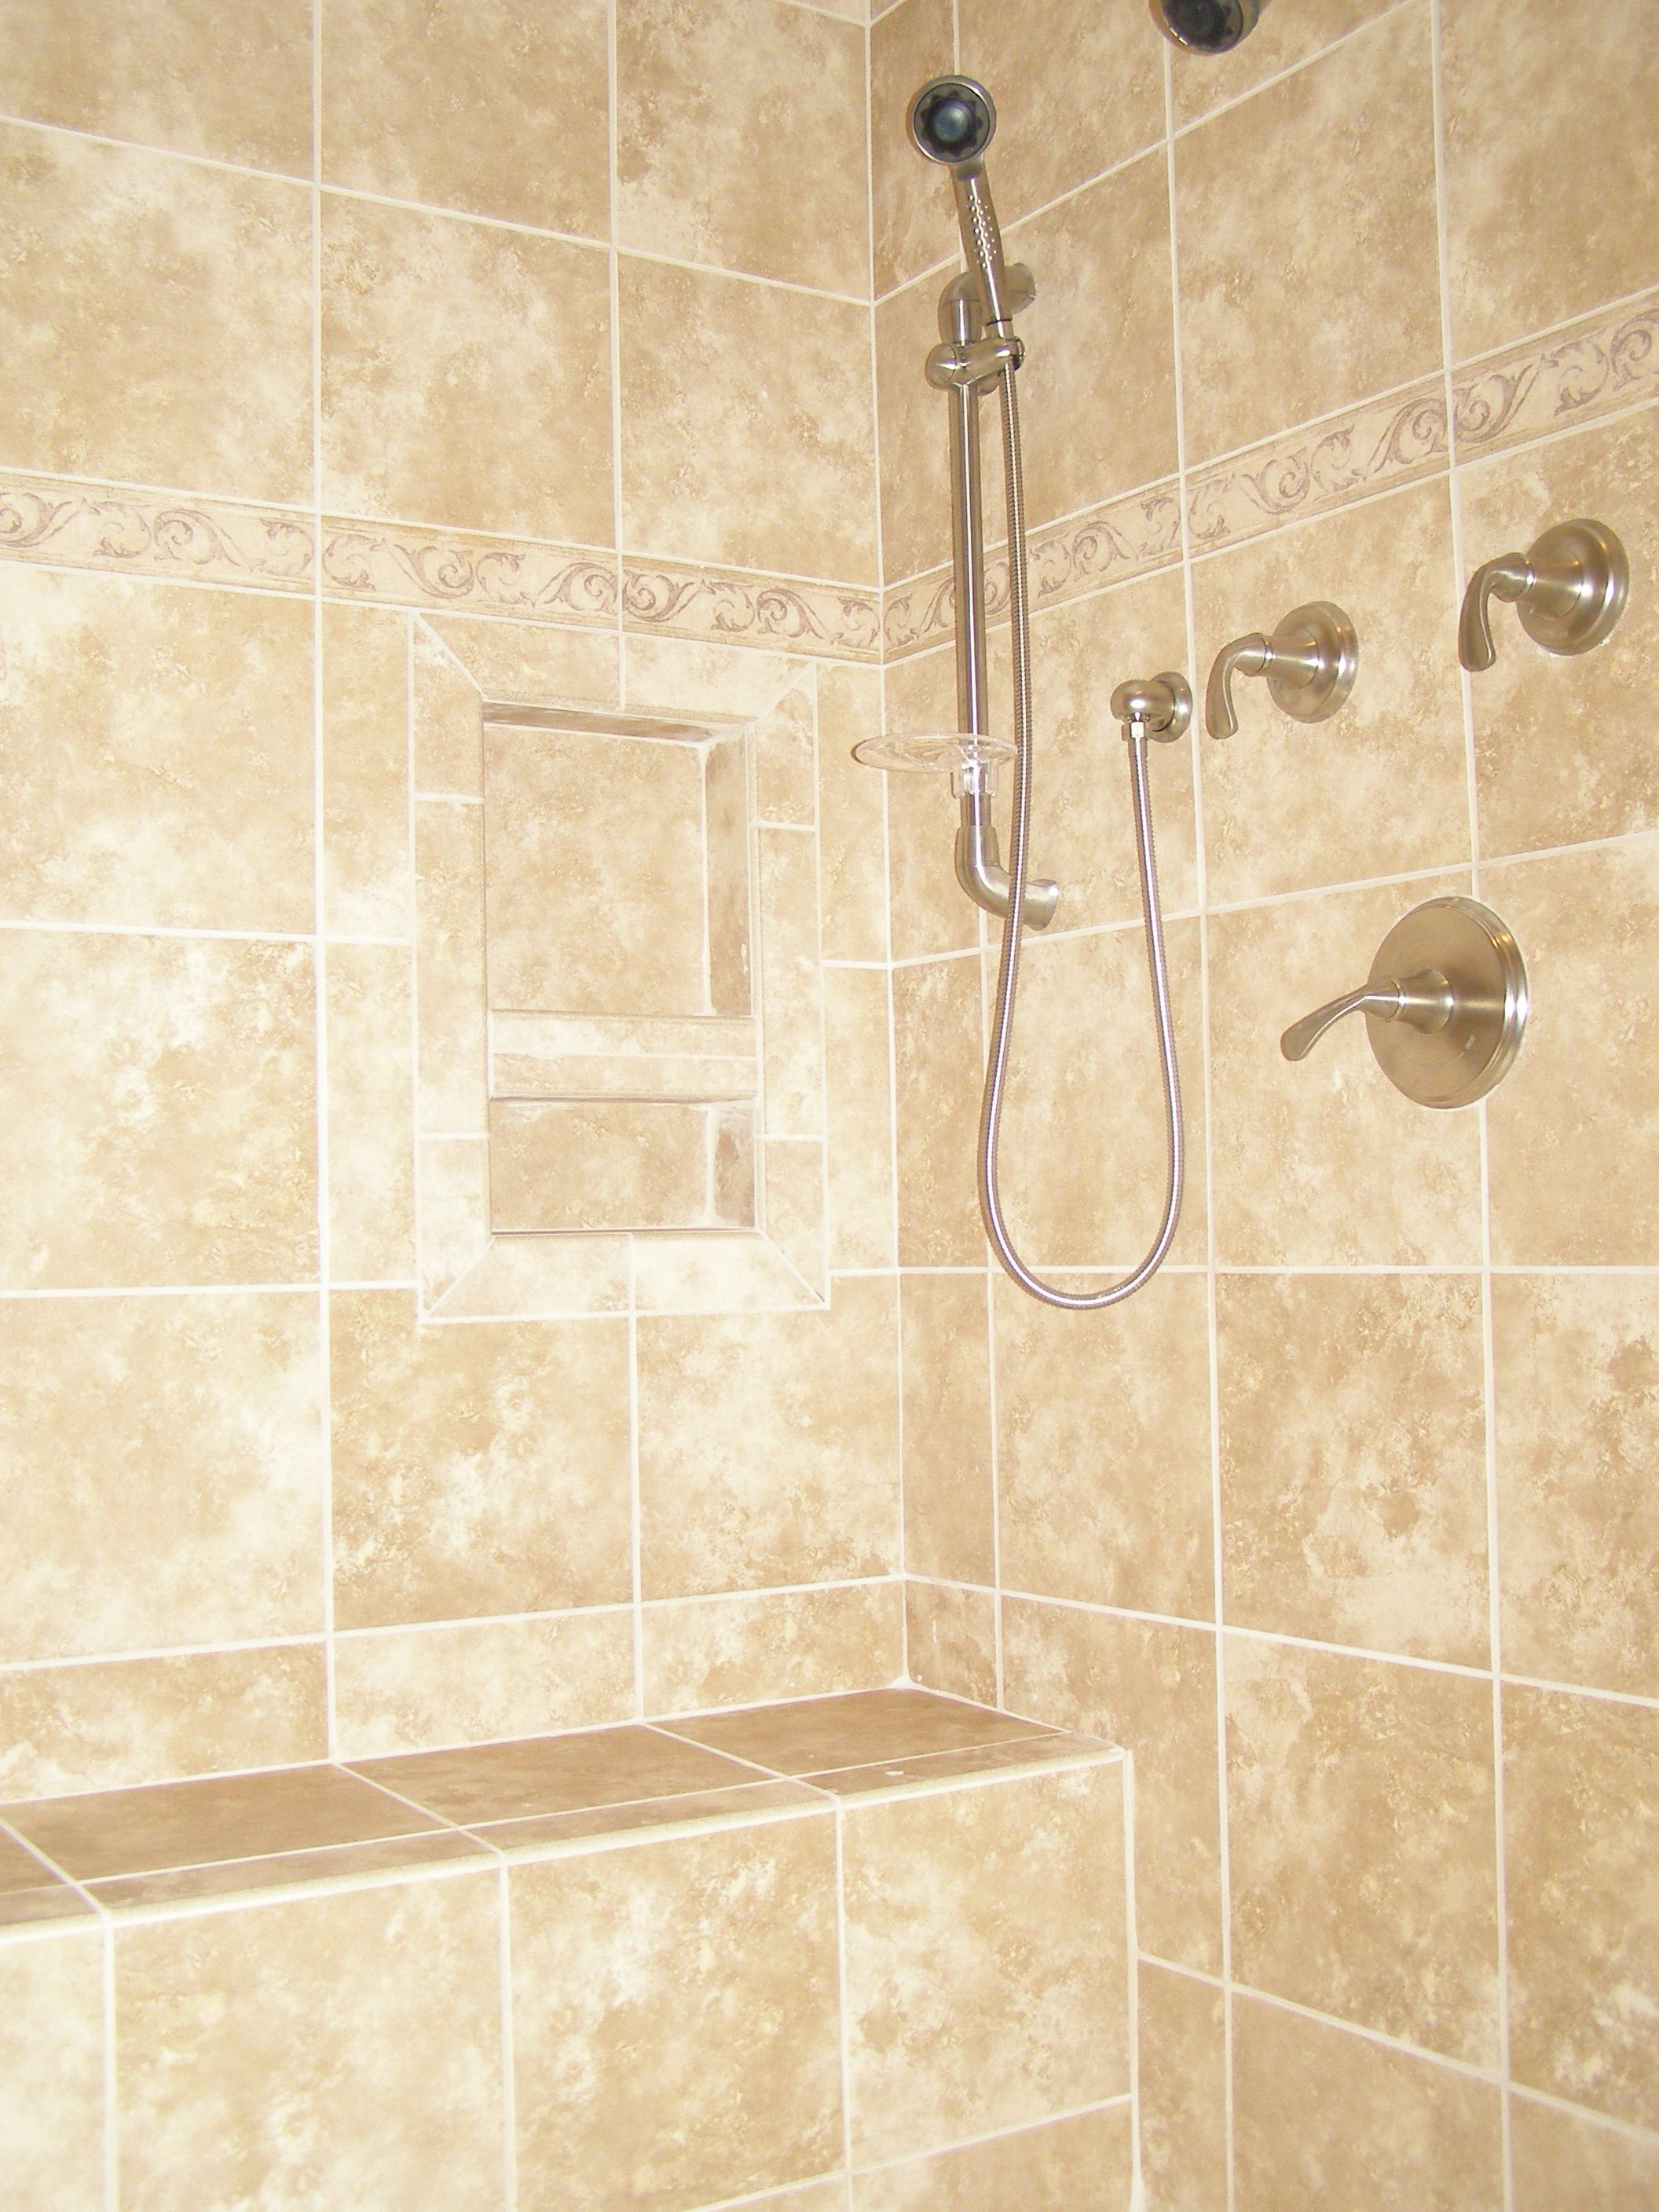 Ceramic tile showers without doors ceramic tile shower for Ceramic tile bathroom ideas pictures